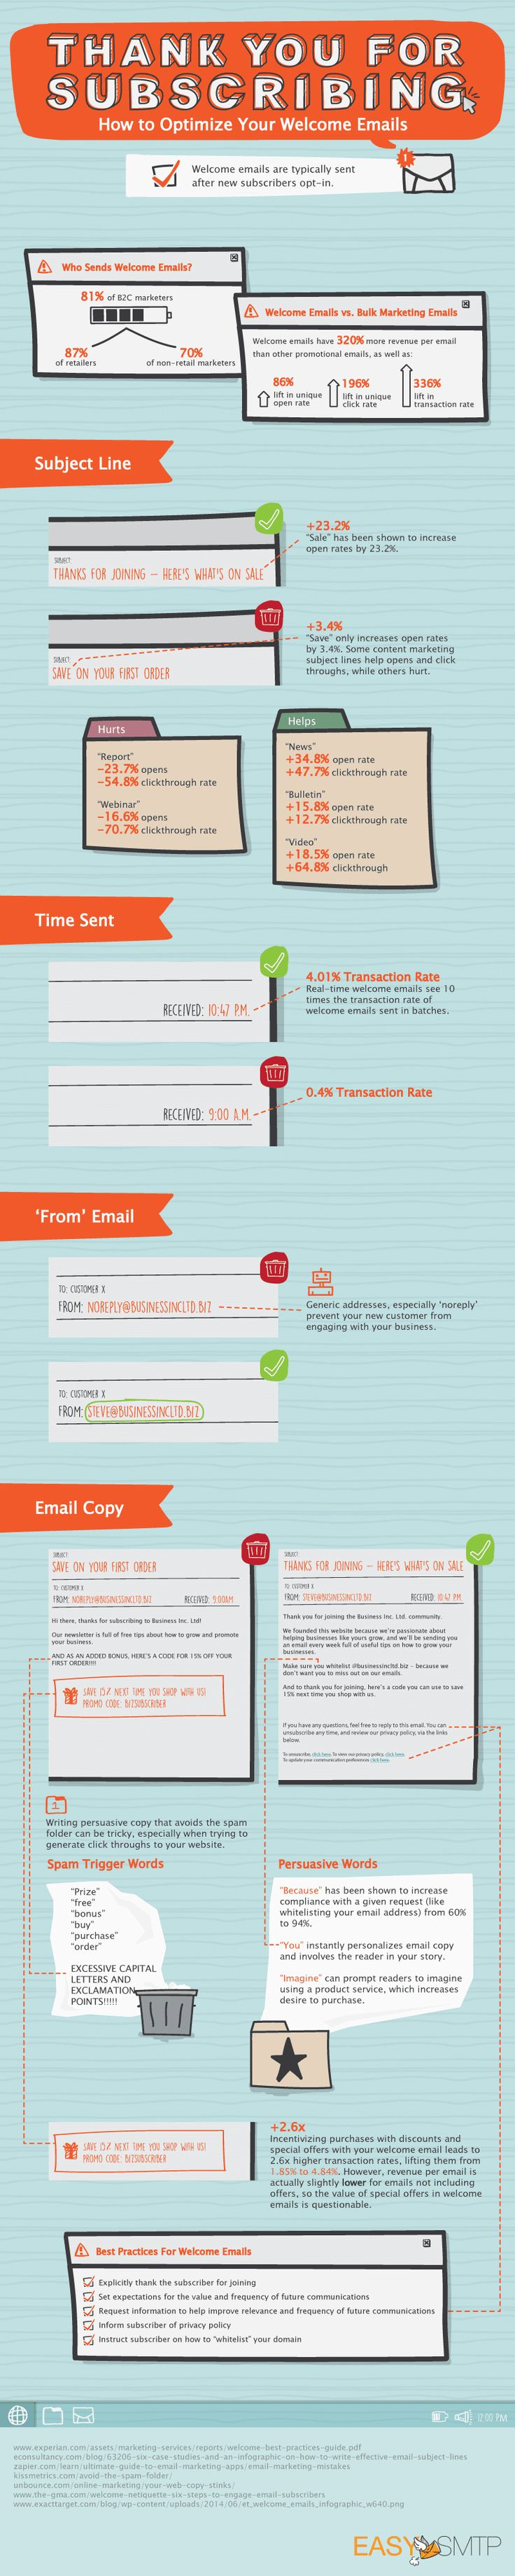 Are you properly optimizing your welcome emails?